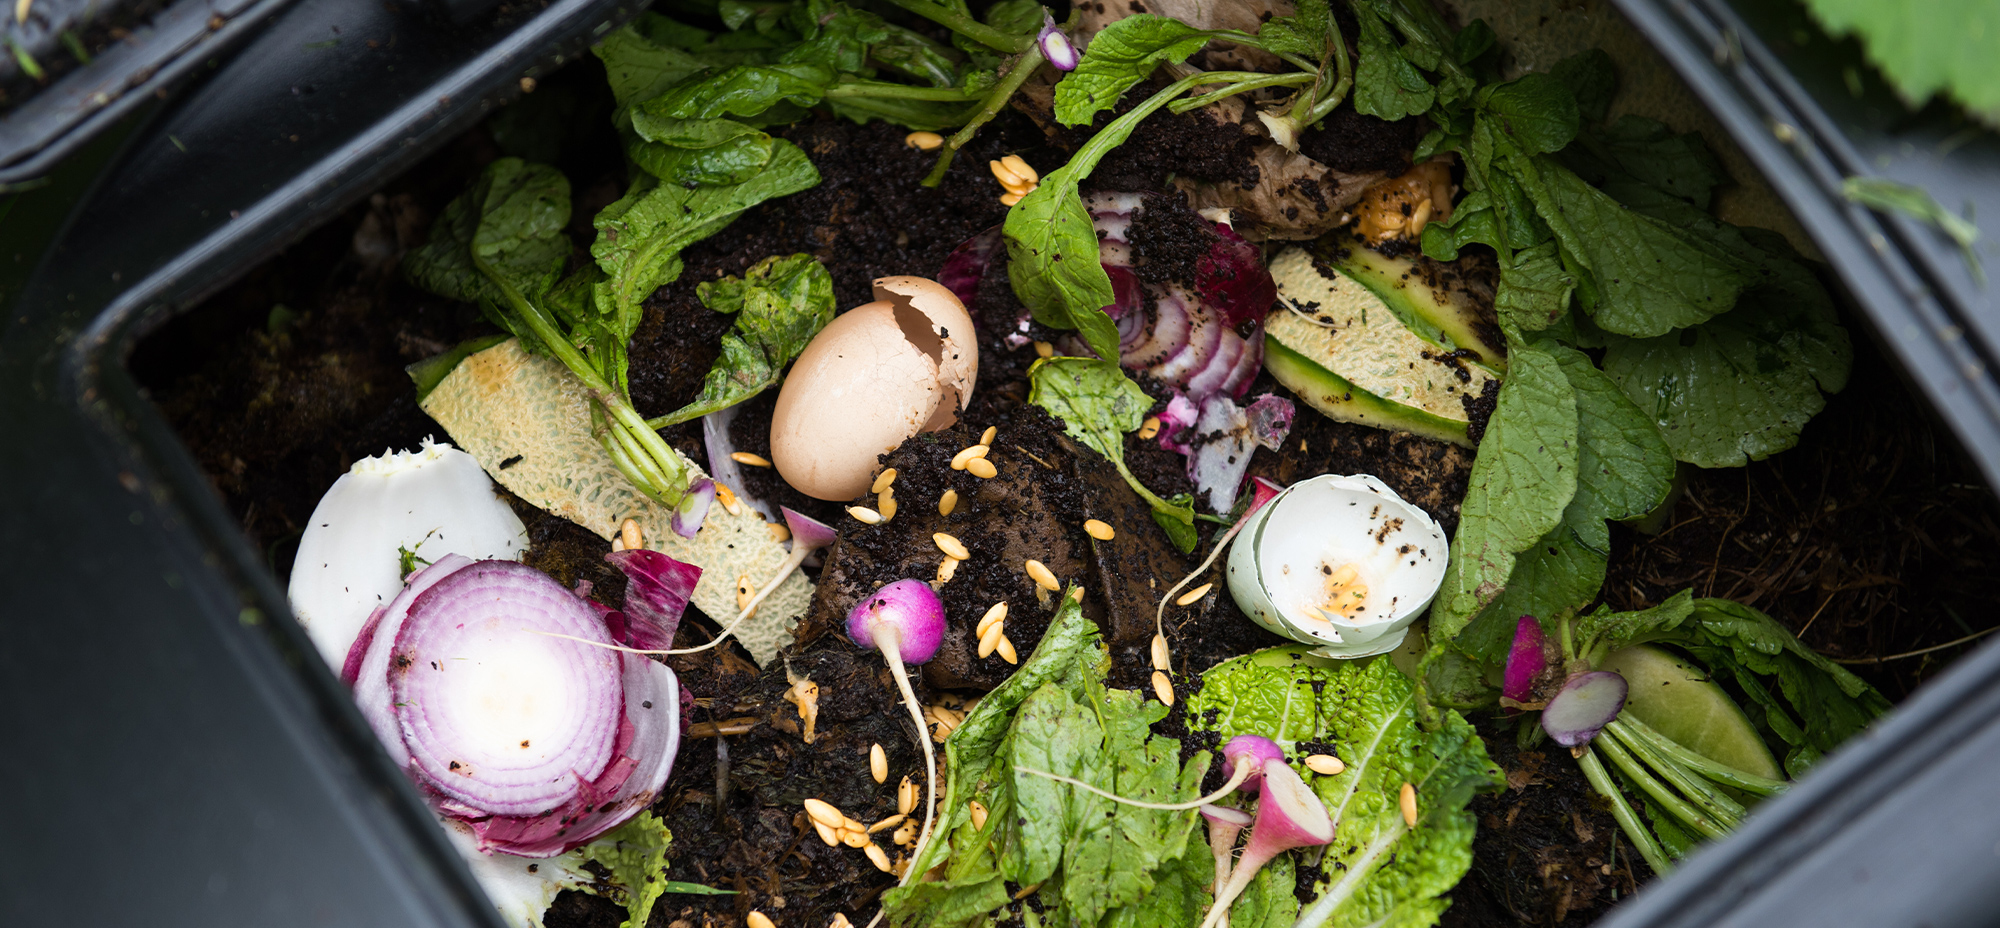 Image of food compost